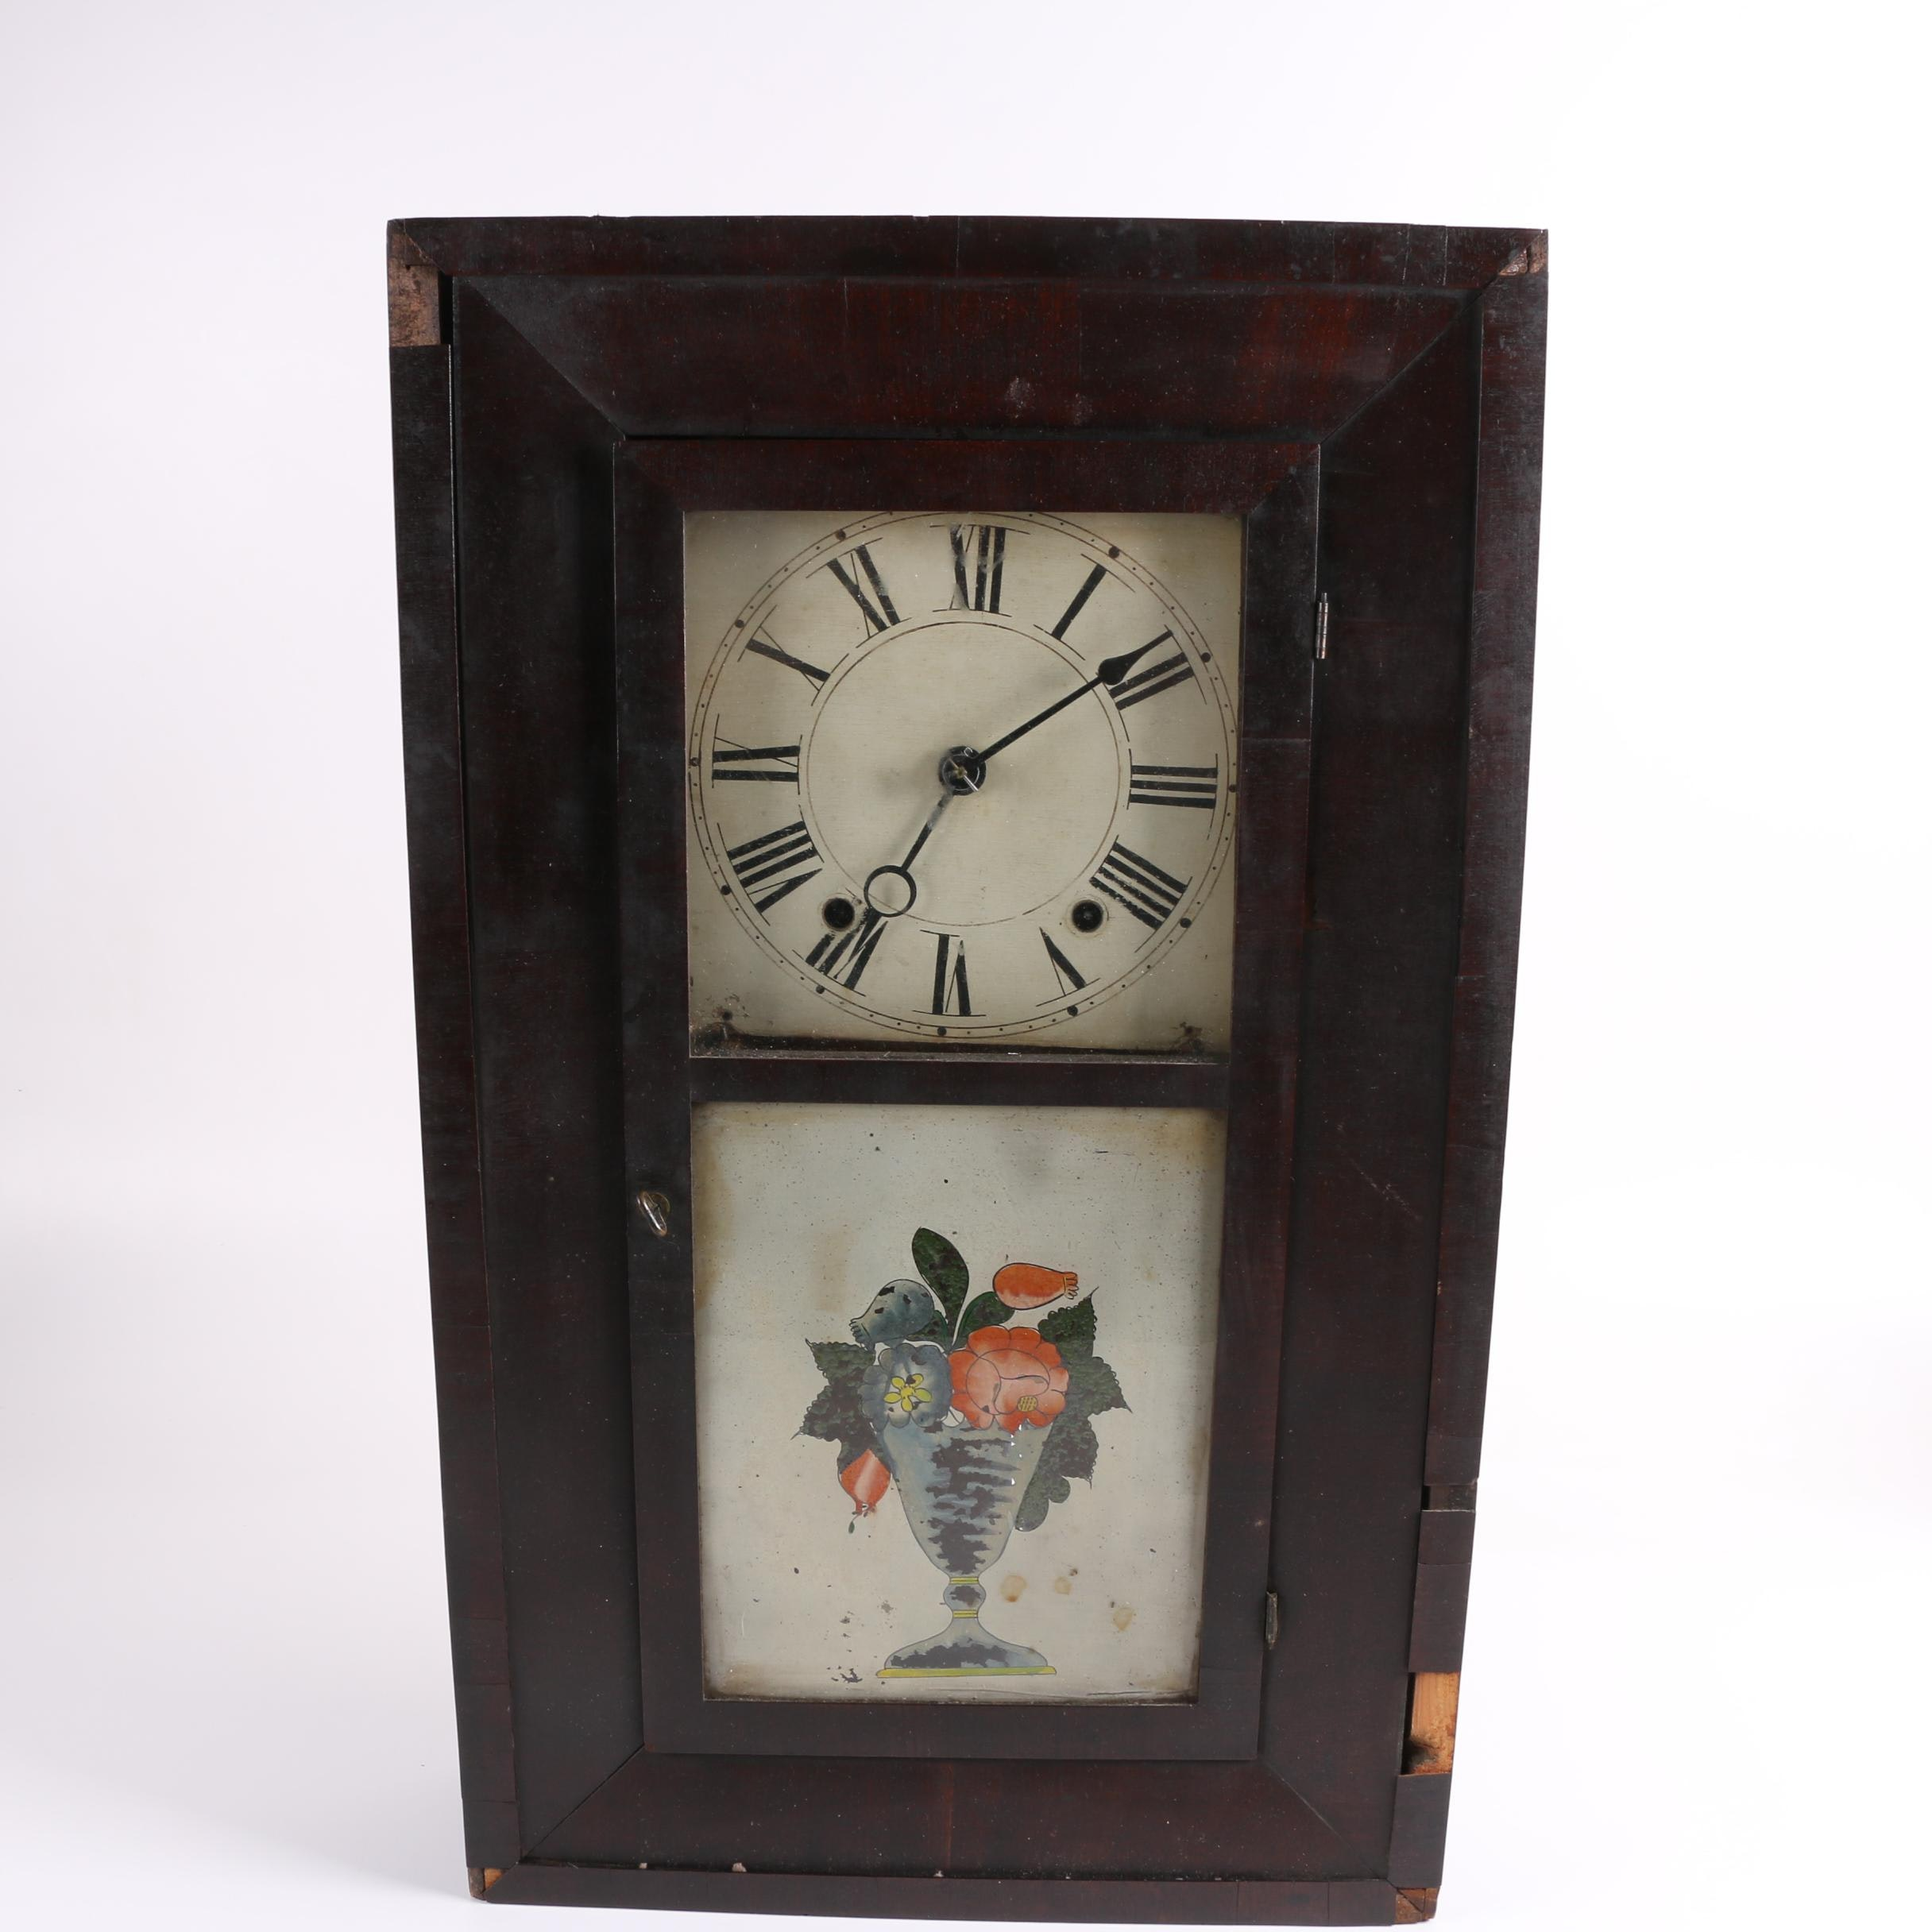 Antique Henry C. Smith Shelf Clock with Reverse Painted Decoration C. 1811-70